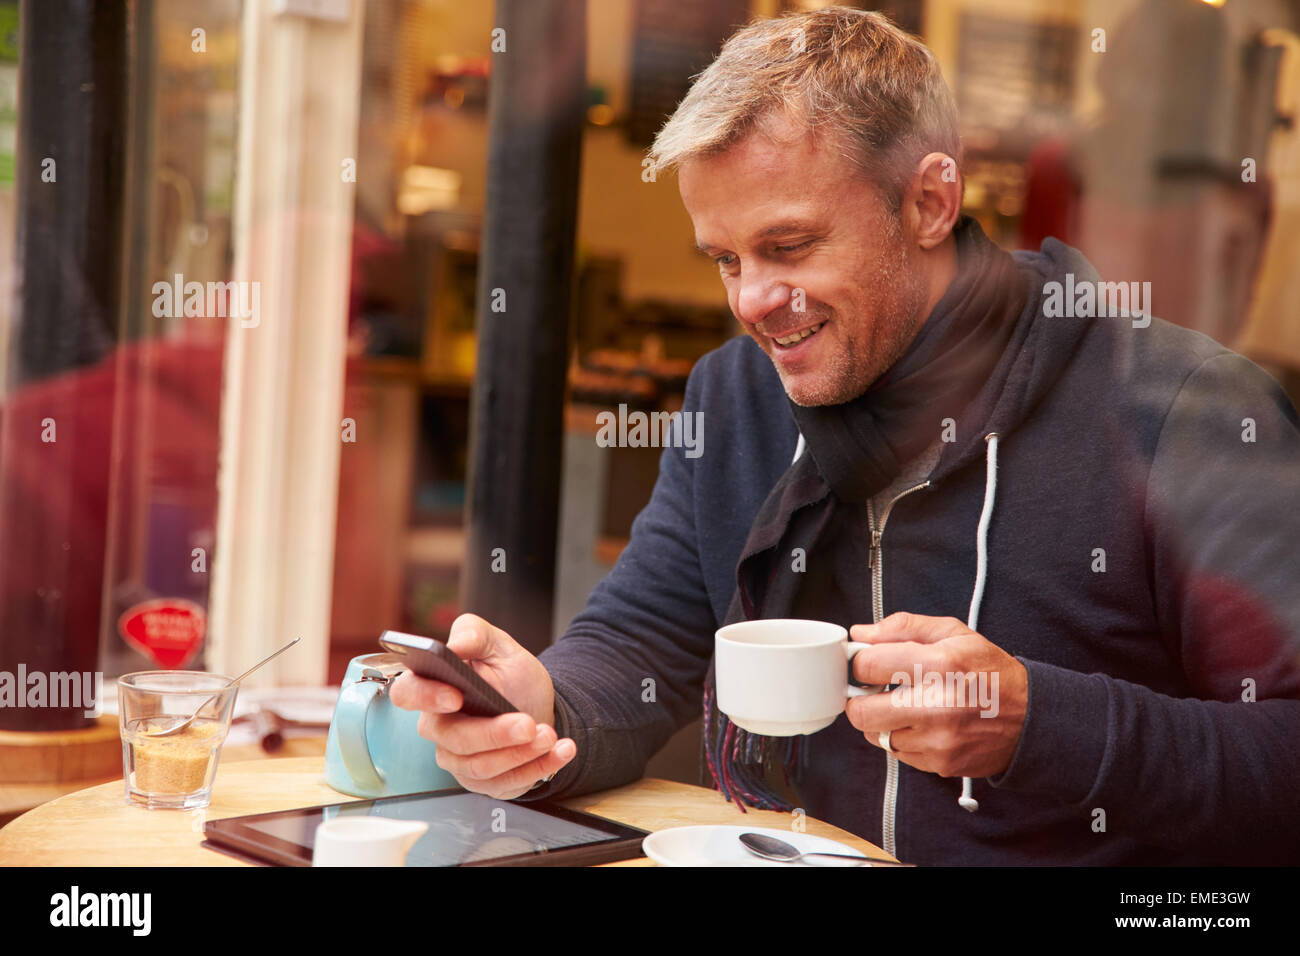 Man Viewed Through Window Of Caf' Using Mobile Phone - Stock Image